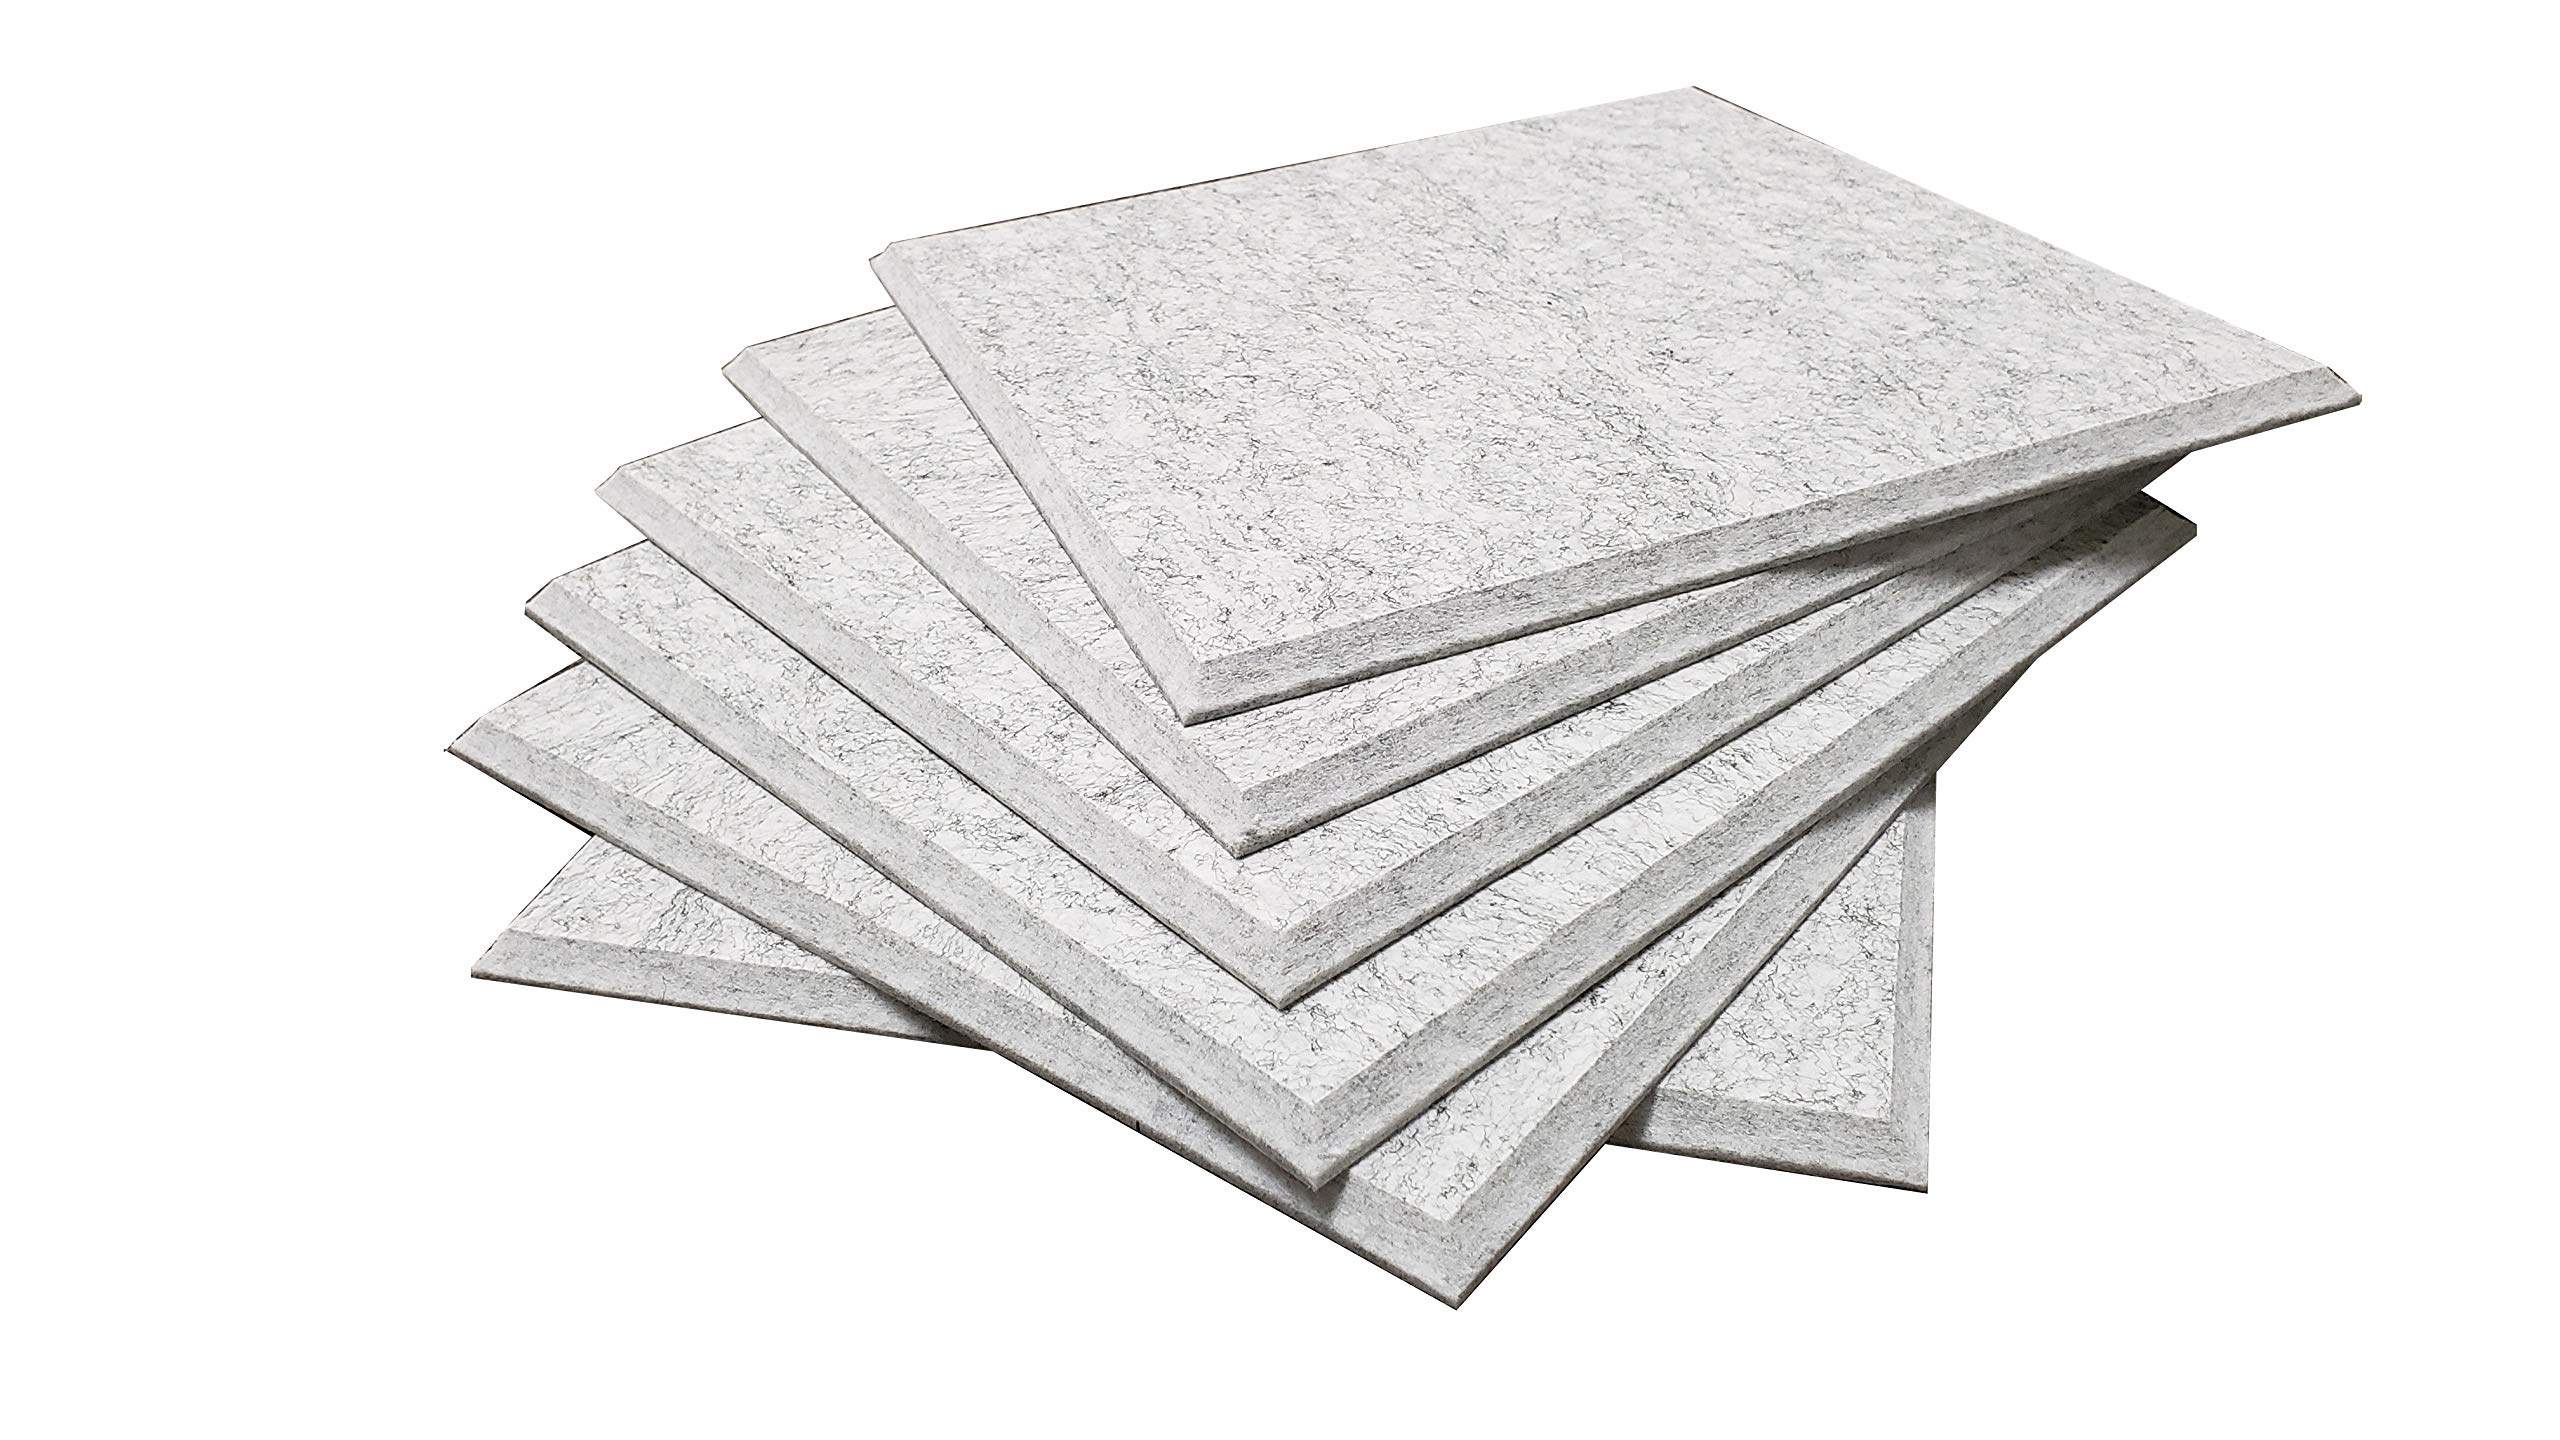 RHINO Acoustic Absorption Panel, Beveled Edge, 12'' X 12'' X 0.4'', Silver Gray Color, 6 Pcs per Pack